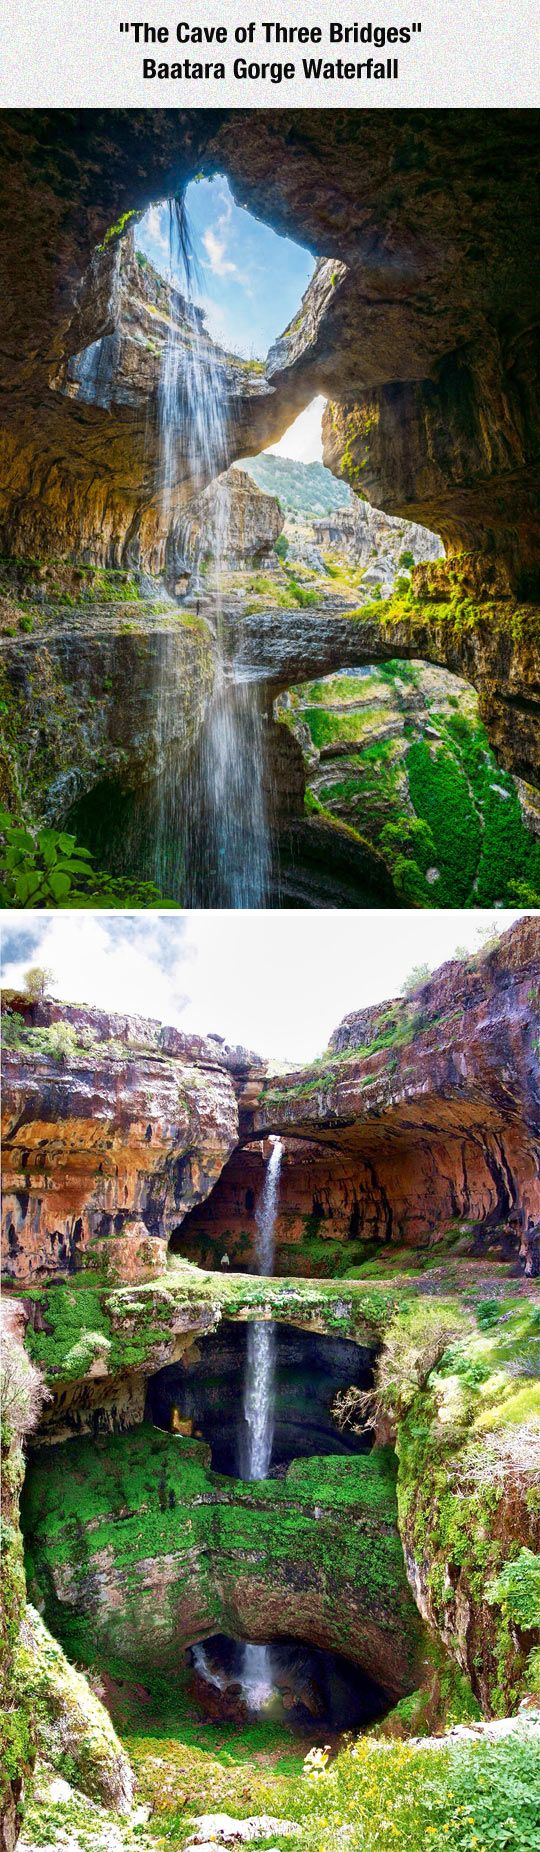 Baatara Gorge Waterfalls, Tannourine, Lebanon (The Cave of the Three Bridges)